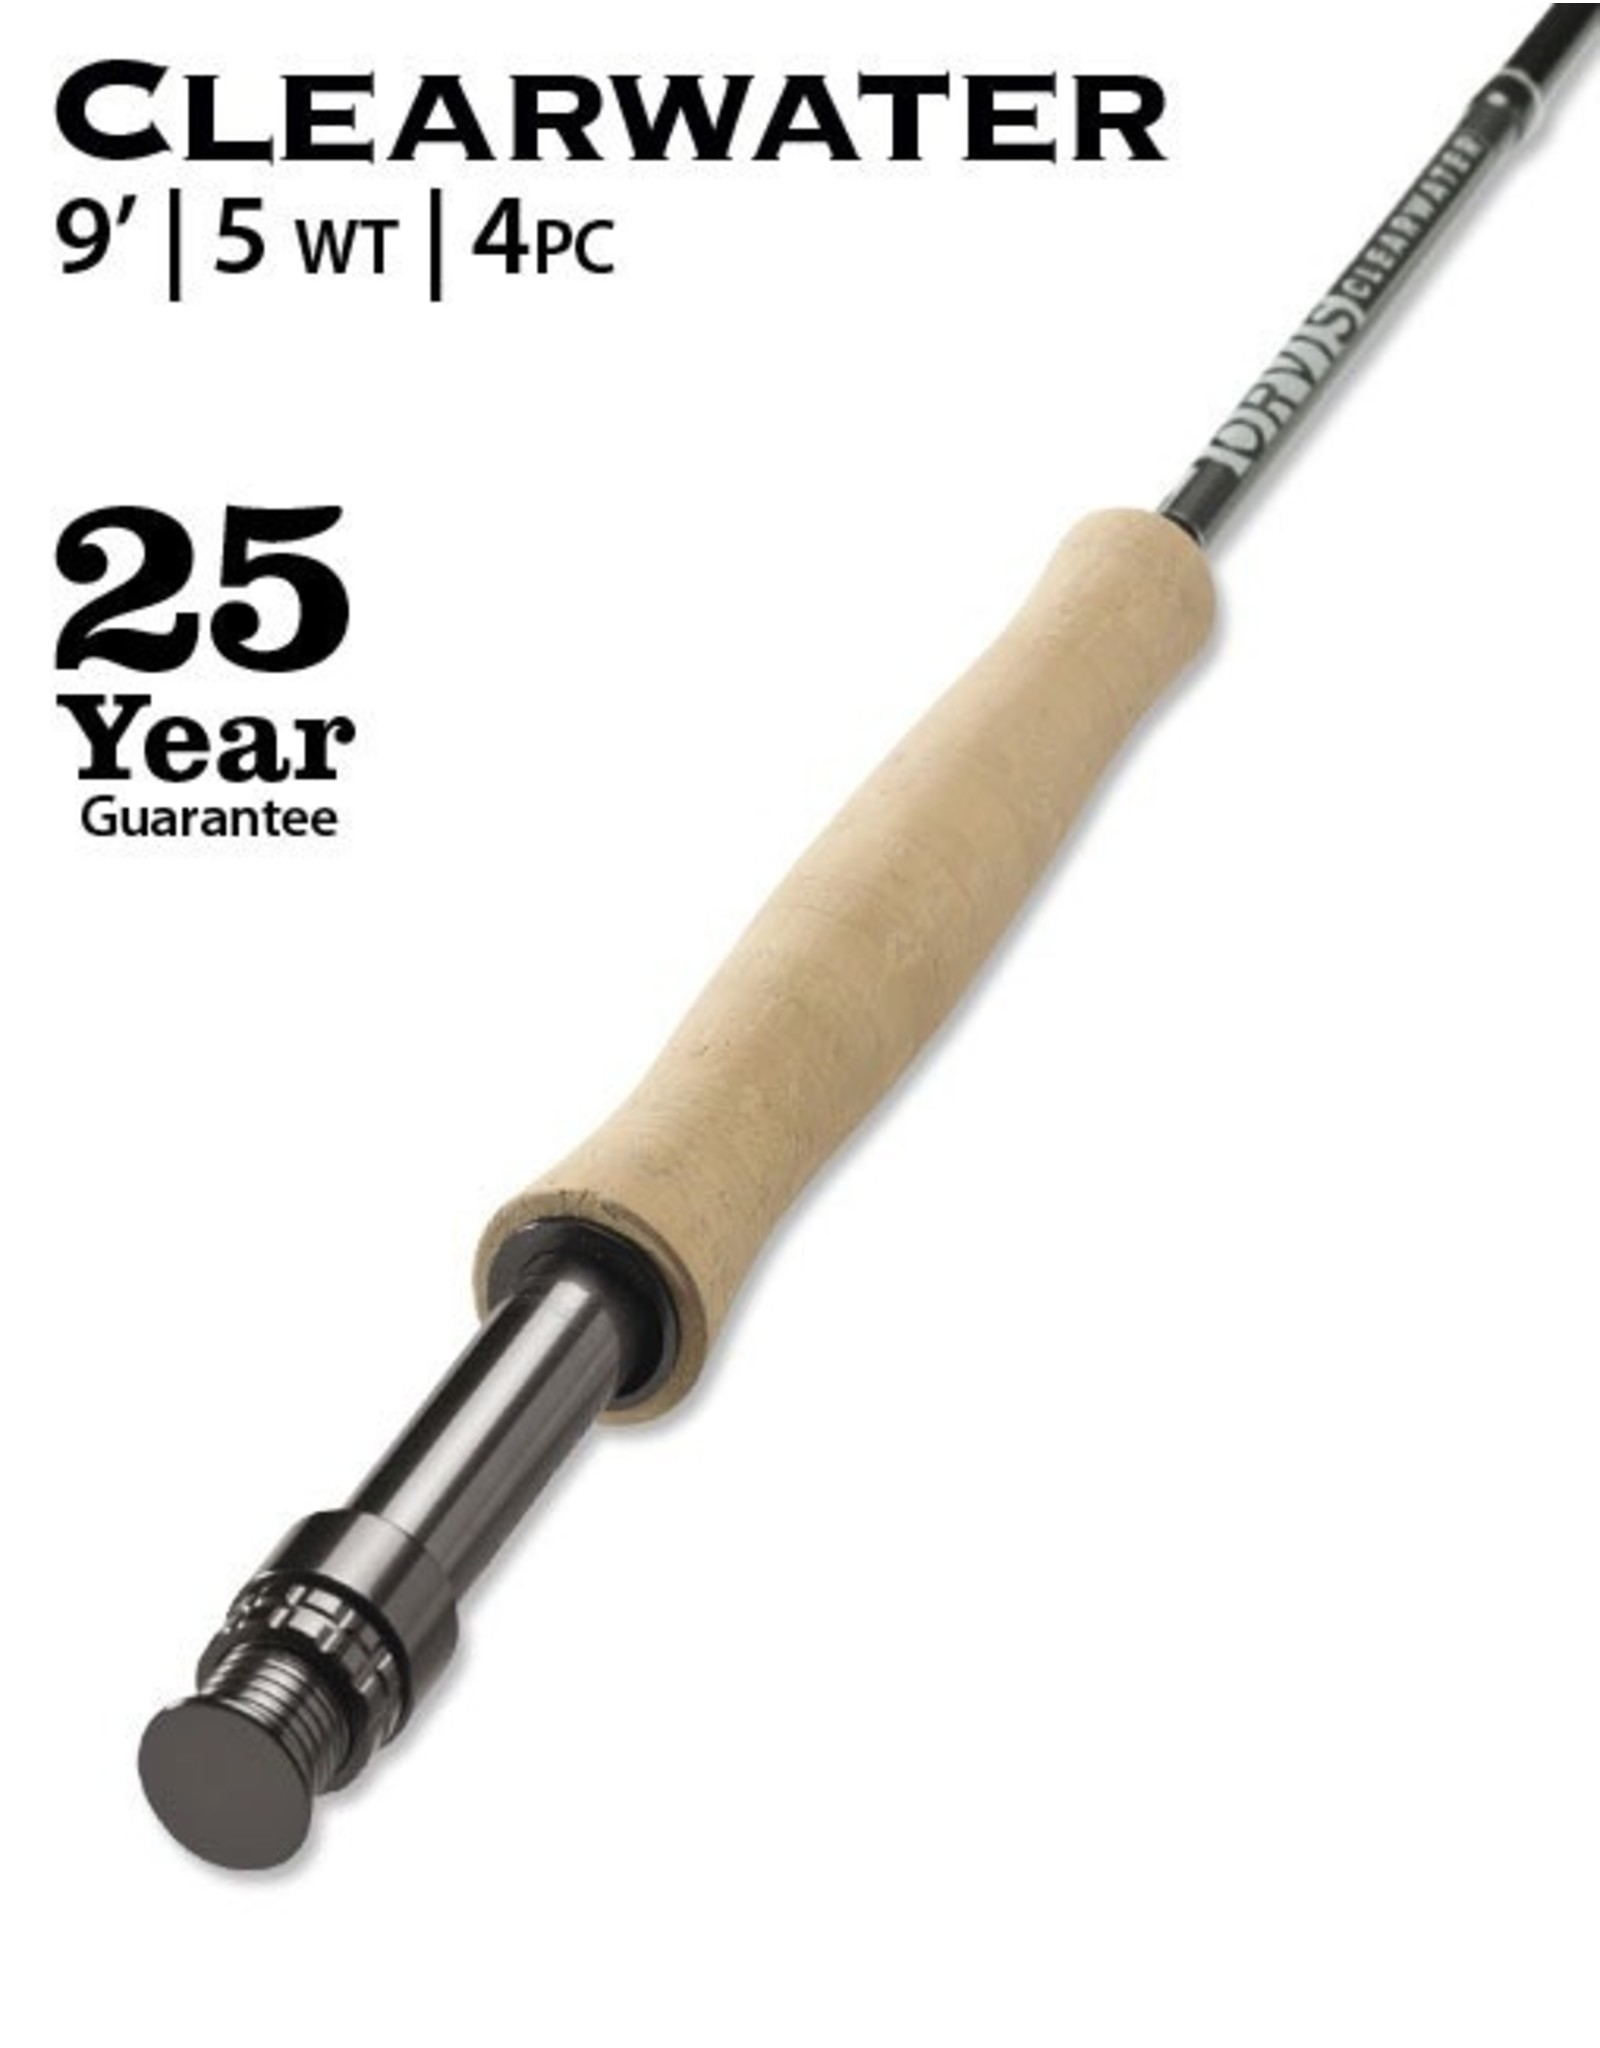 Orvis NEW Orvis Clearwater Fly Rod 9' 6wt (4pc)